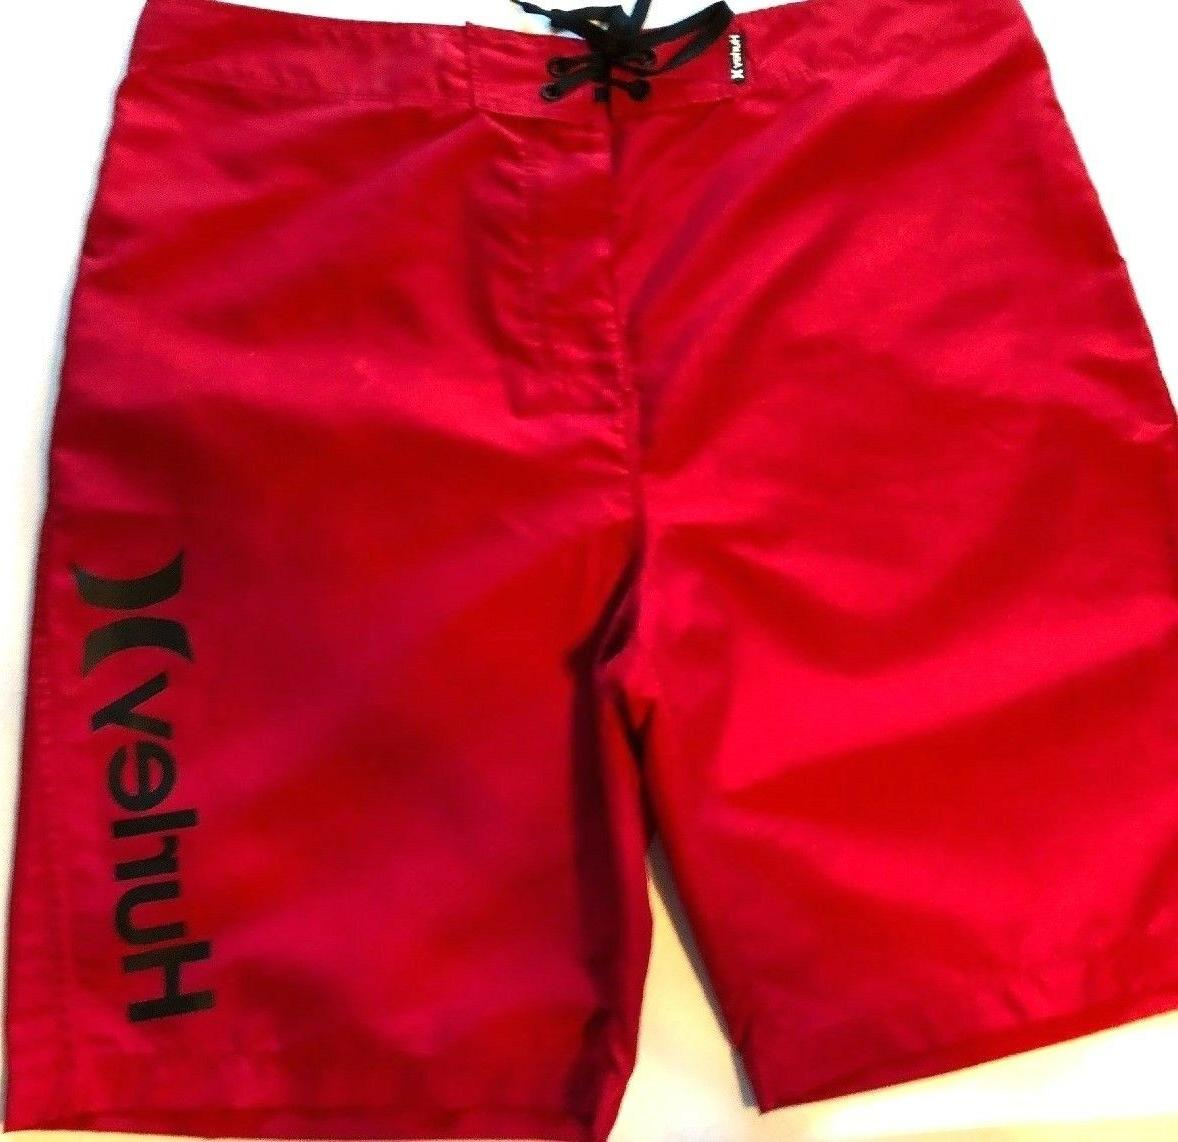 One Shorts 2.0 Red MBS0006250 6DL